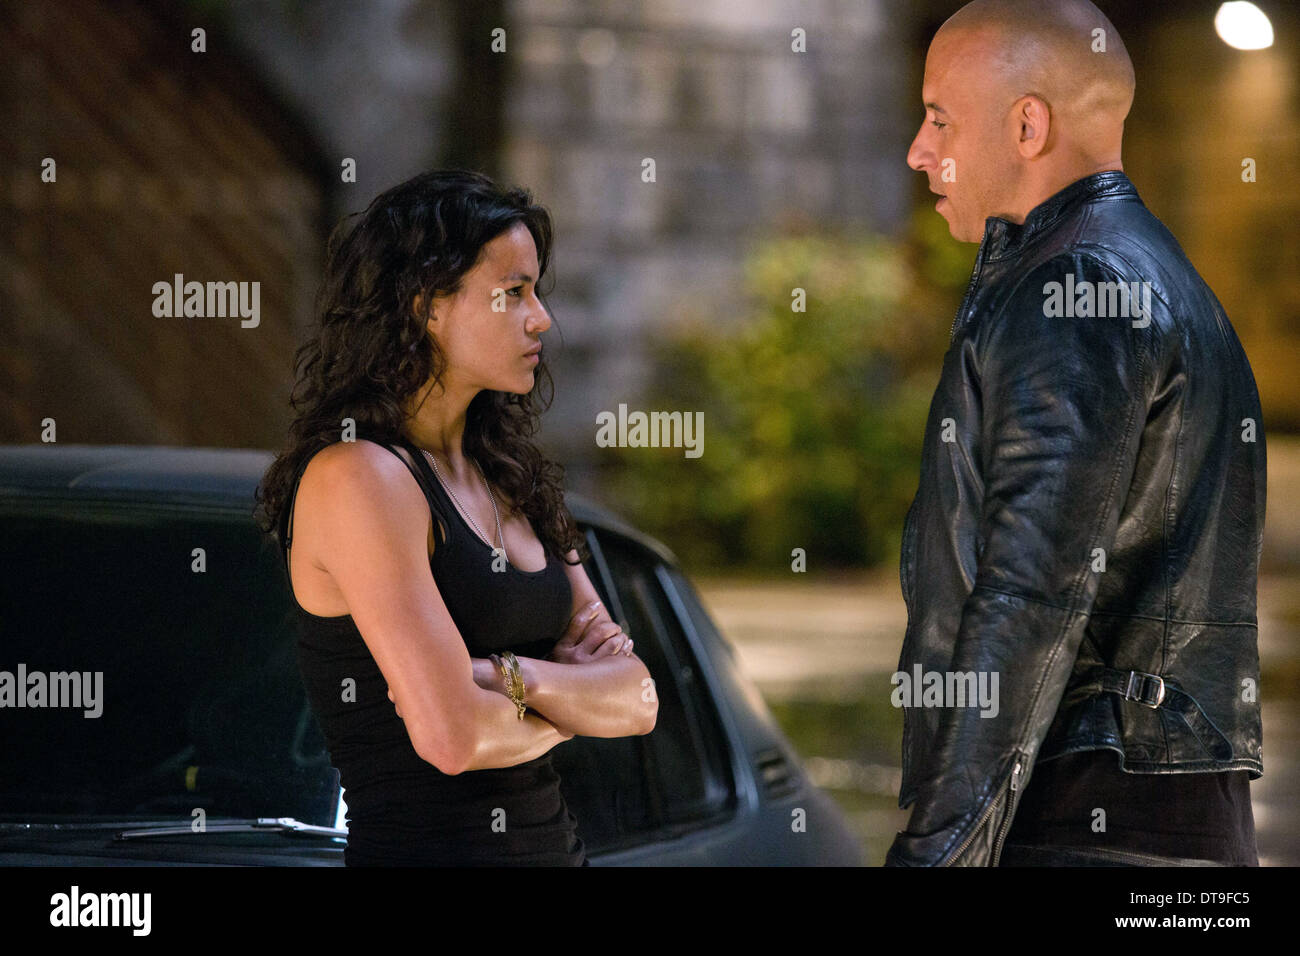 Michelle Rodriguez Vin Diesel Fast And Furious 6 2013 Stock Photo Alamy